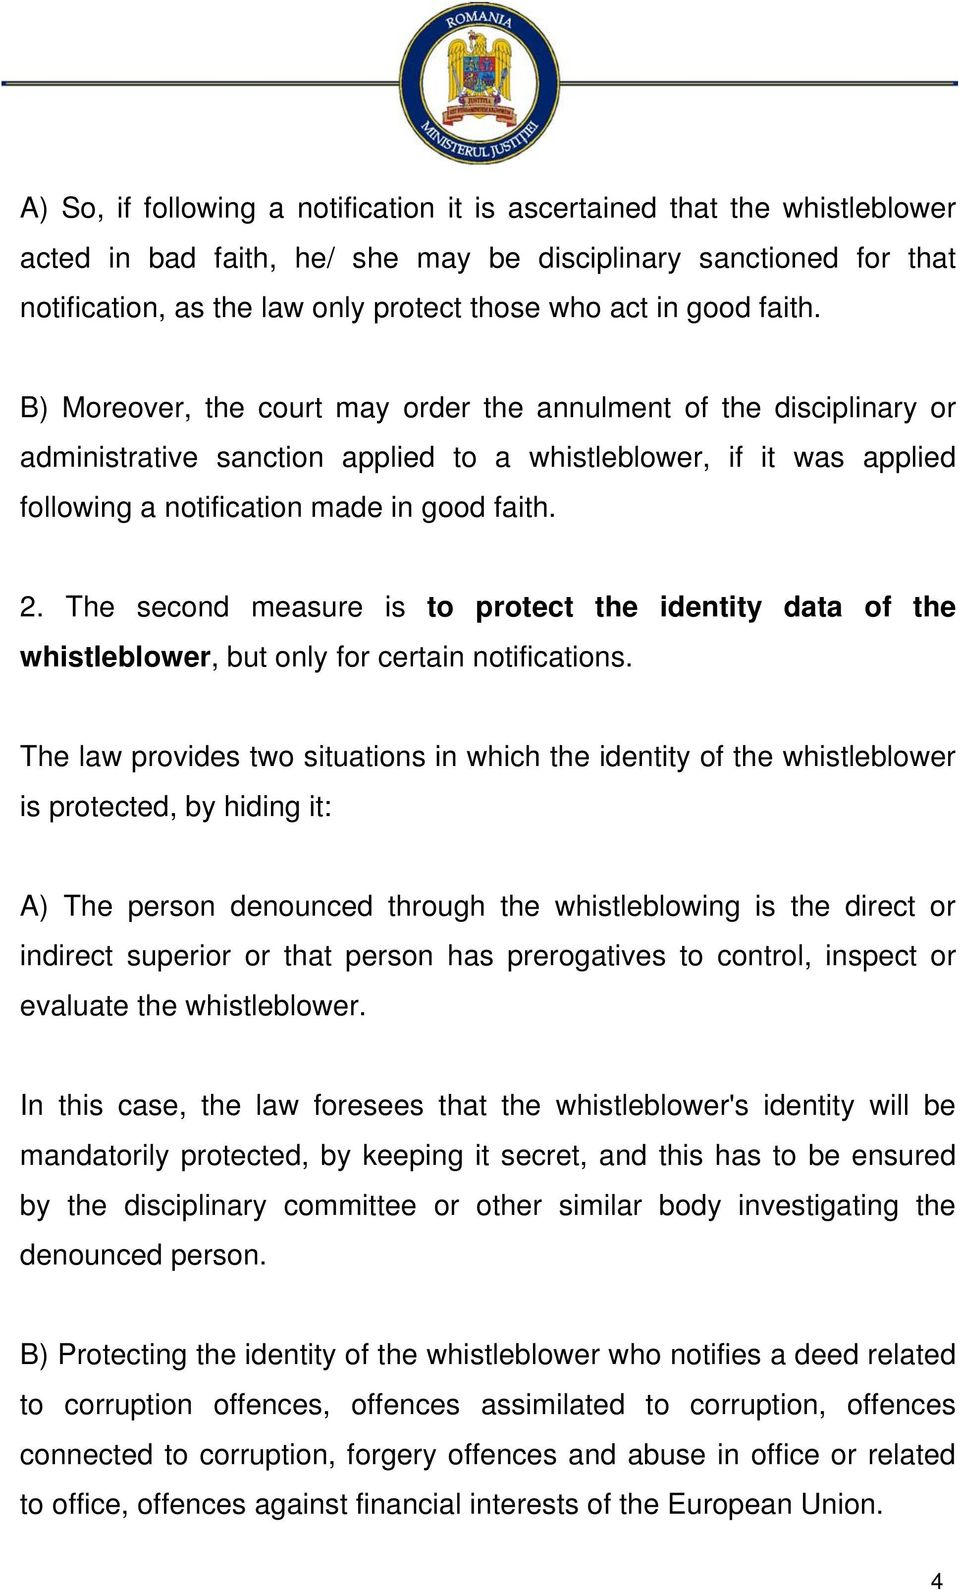 The second measure is to protect the identity data of the whistleblower, but only for certain notifications.